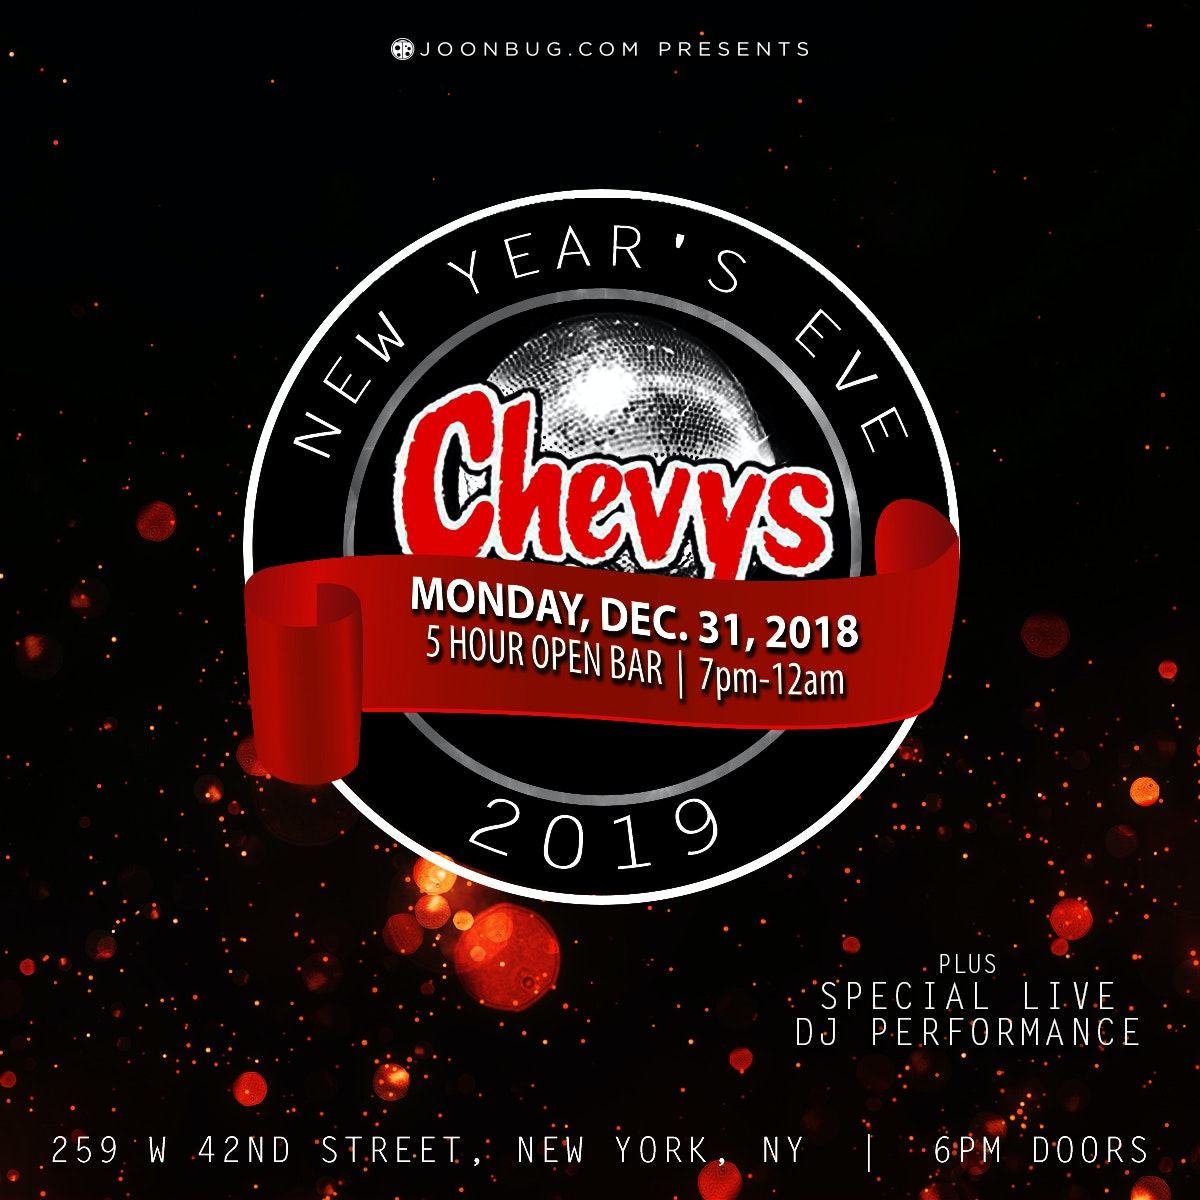 Chevys Times Square New Years Flyer